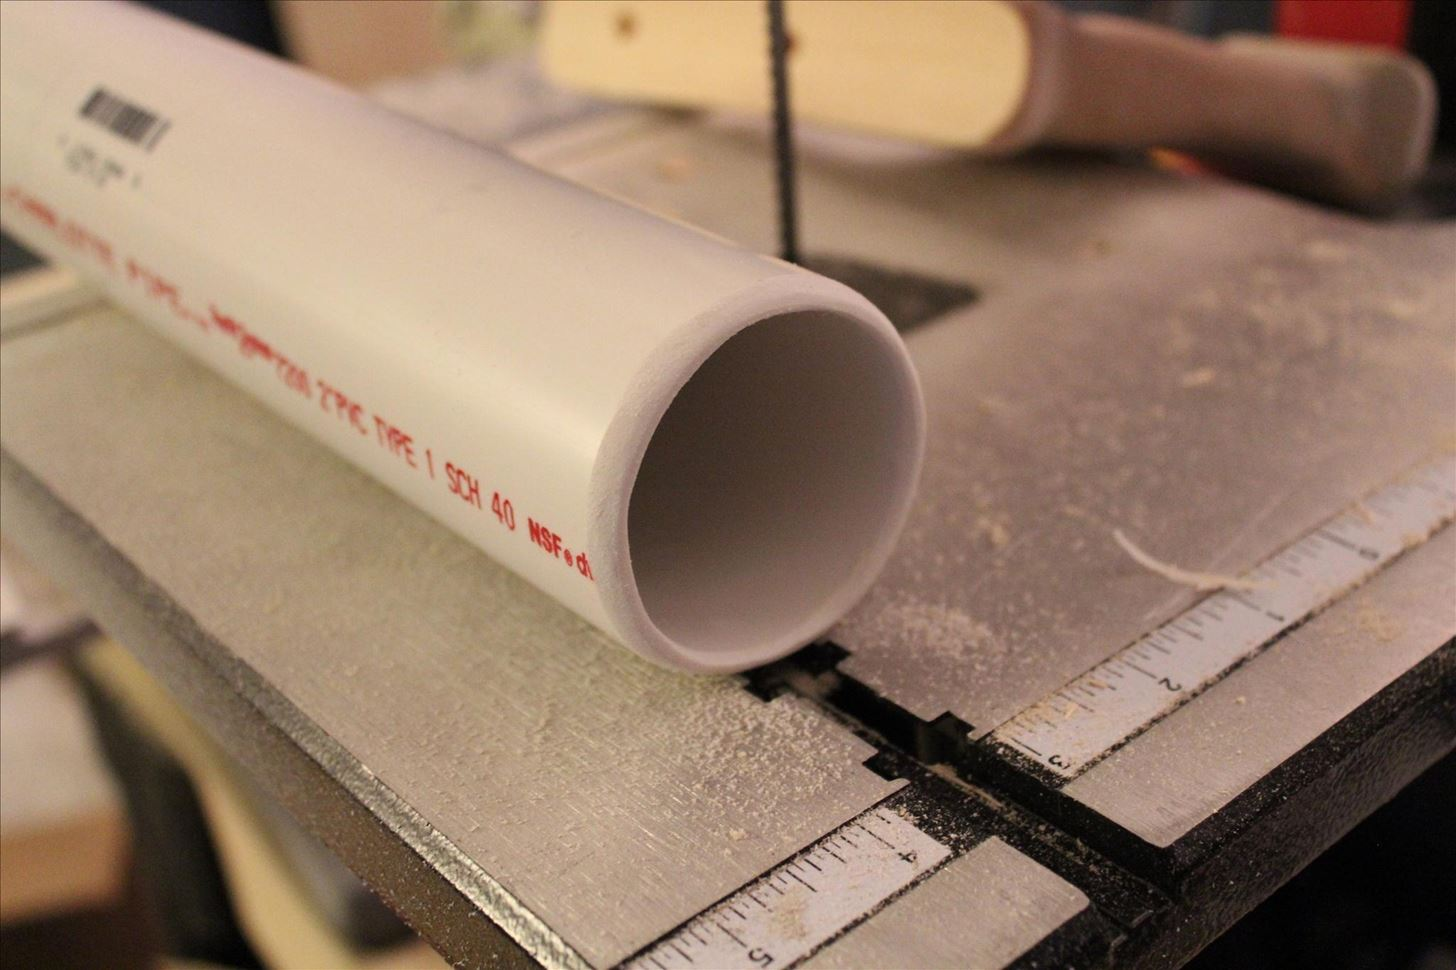 Building a Steampunk Hand Cannon, Part 2: How to Make and Detail a PVC Gun Barrel